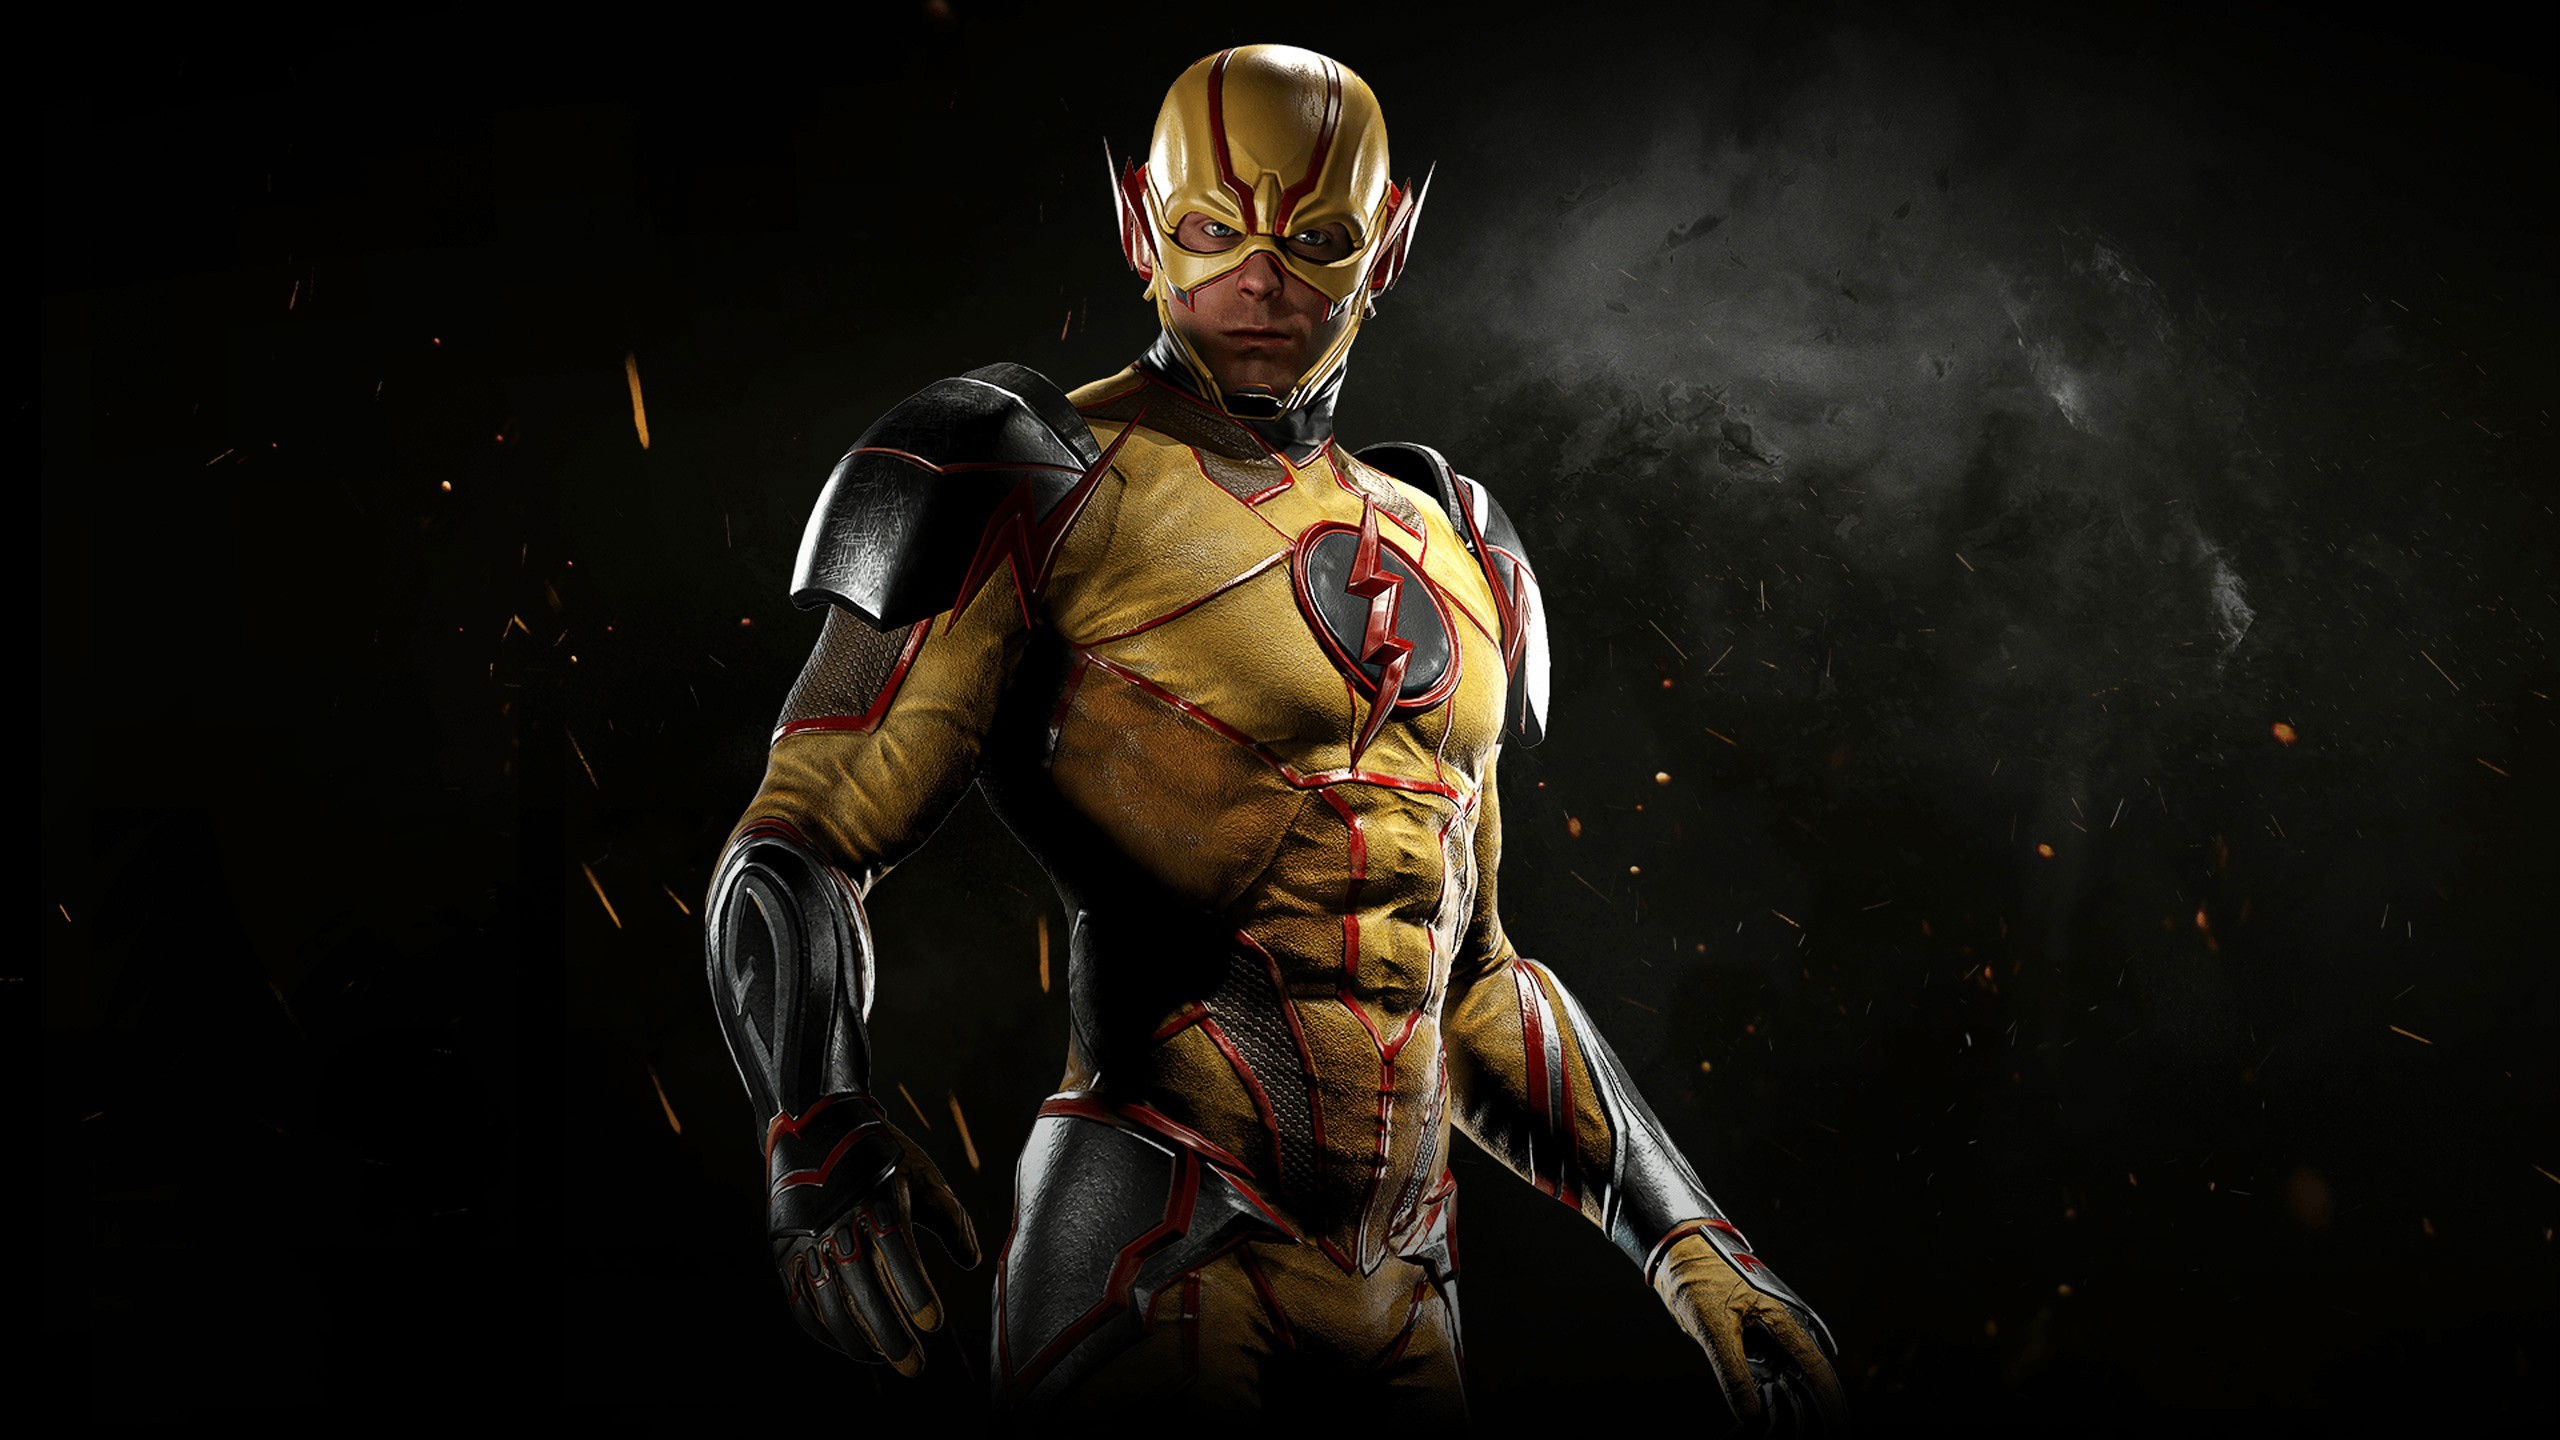 Injustice 2: Is that Wally West as Kid Flash in the second story .